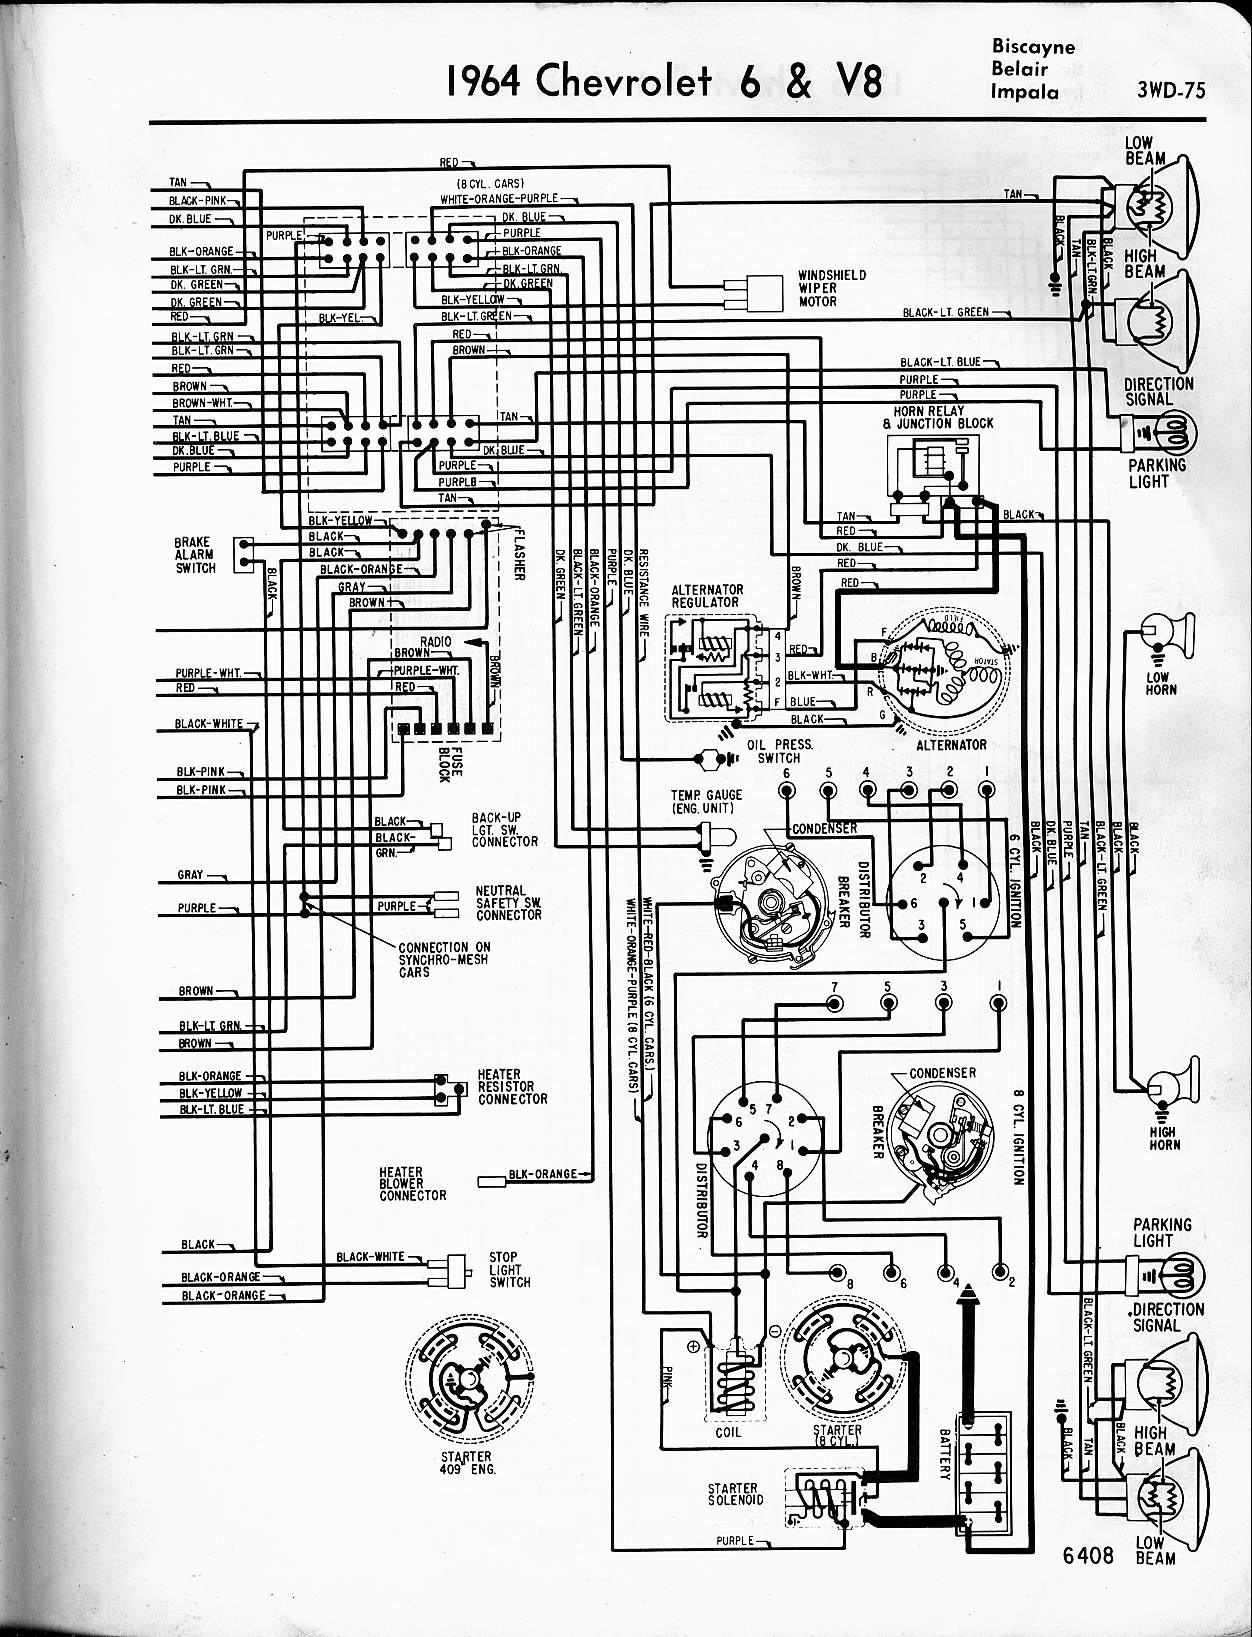 Dash Wiring Diagram 1964 - Wiring Data Diagram on 71 nova wheels, 71 nova fuel gauge, 71 nova suspension, 1970 nova diagram, 71 nova instrument-panel, 71 nova steering, 71 nova headlight, 71 nova wire reverse, 71 nova brochure, 71 nova ignition, 71 chevrolet wire diagram,